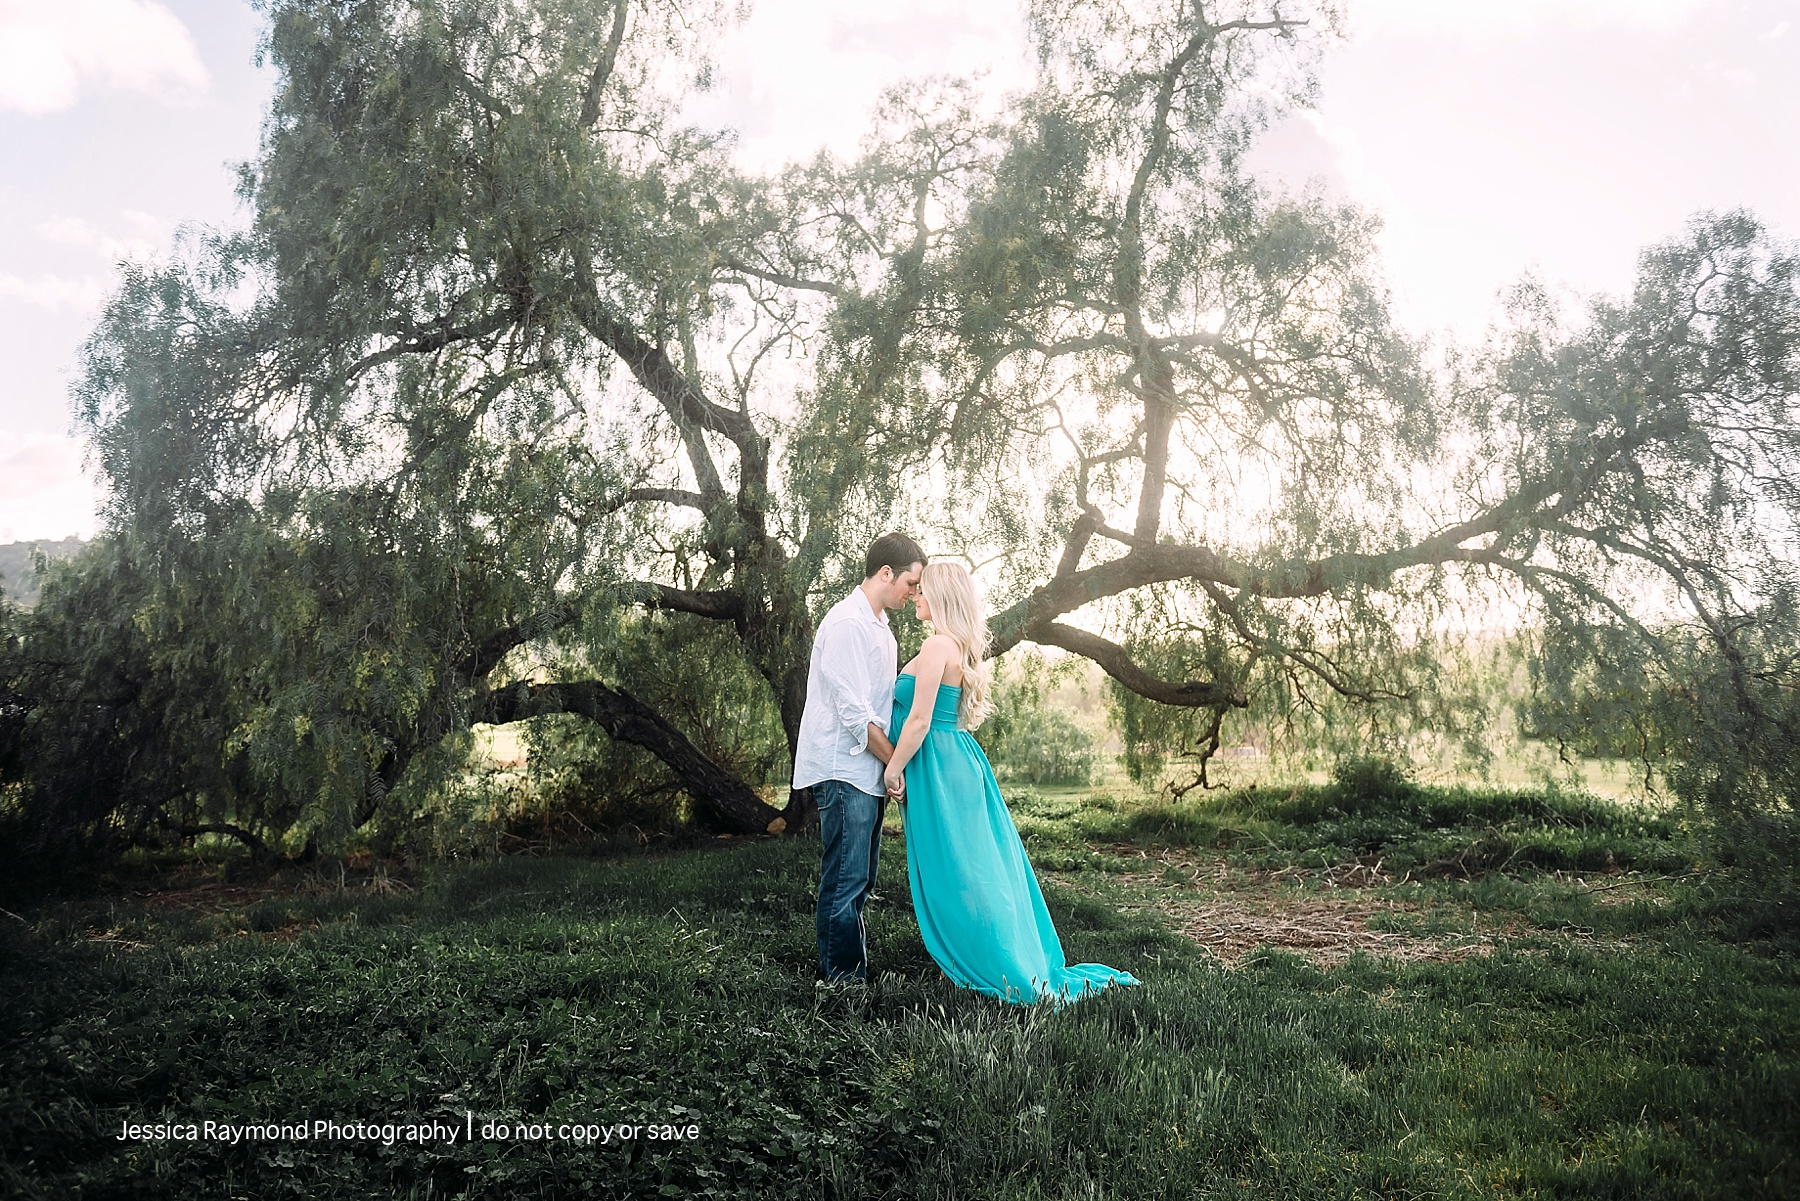 rancho penasquitos maternity session couple pose by tree